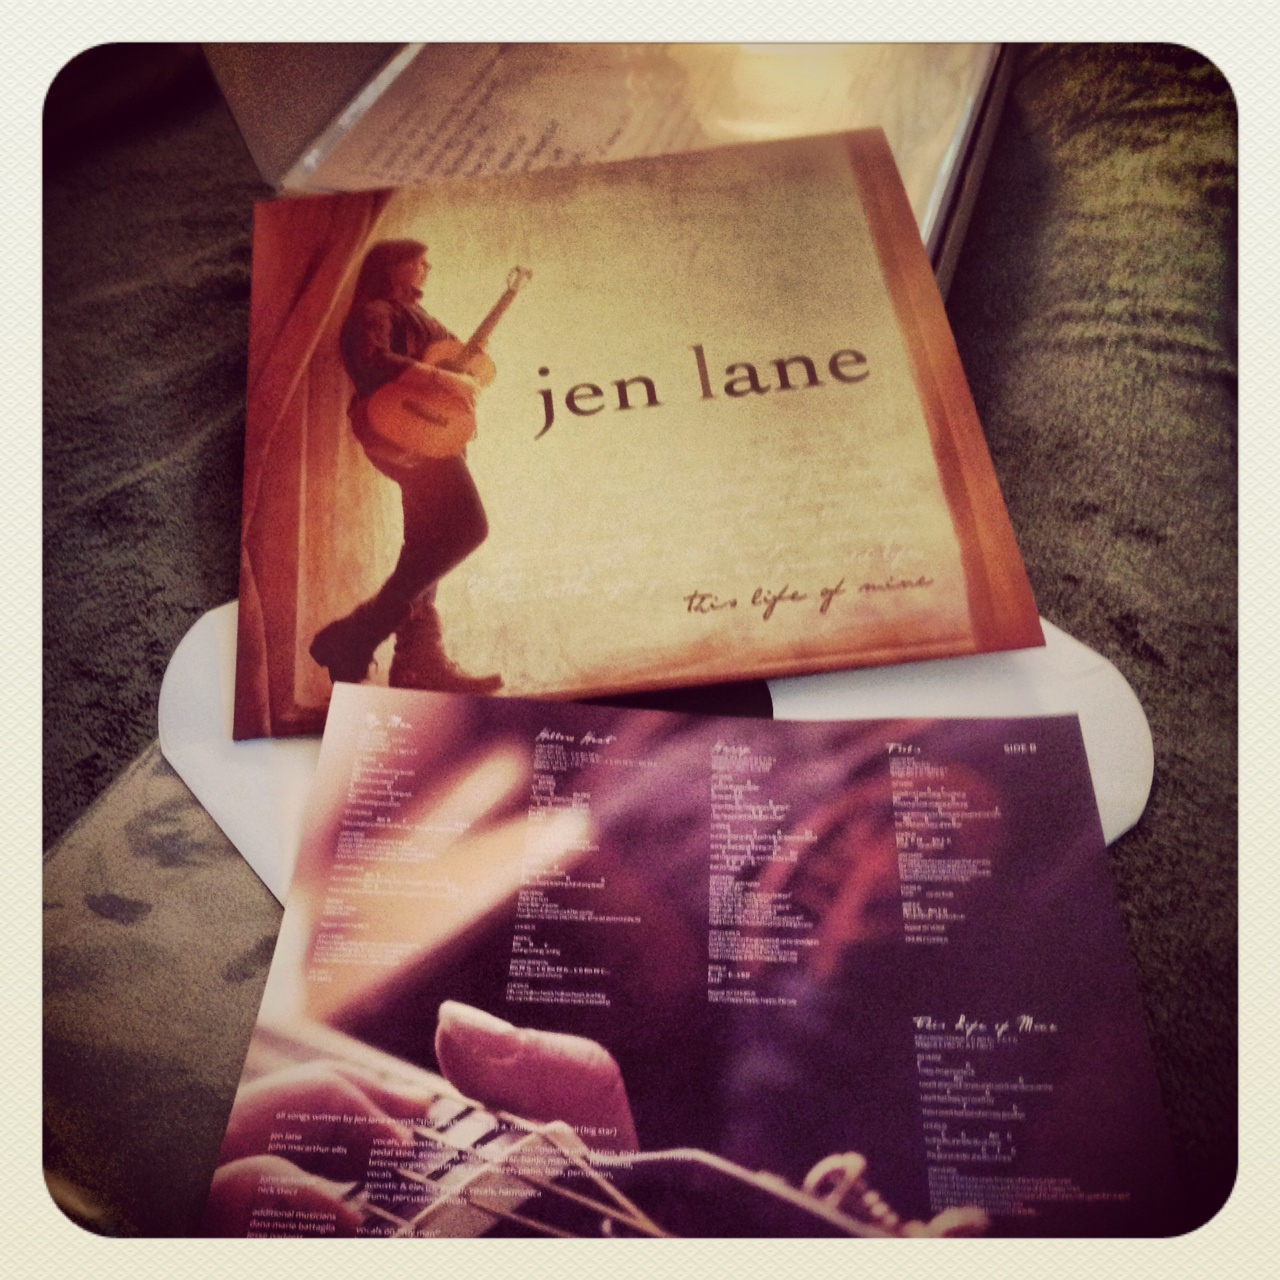 Jen Lane vinyl photo